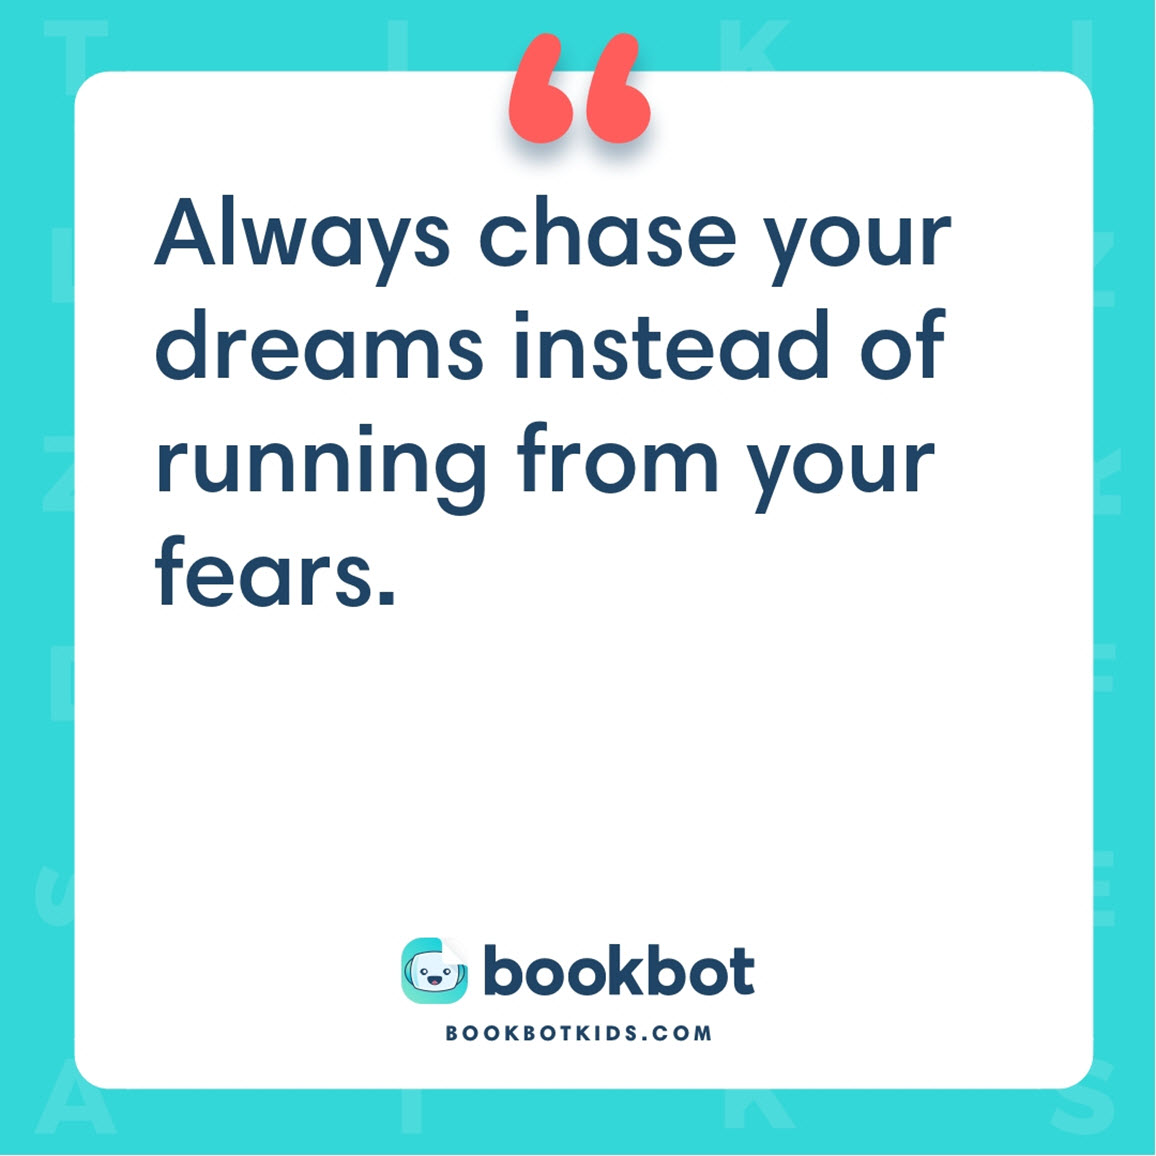 Always chase your dreams instead of running from your fears.